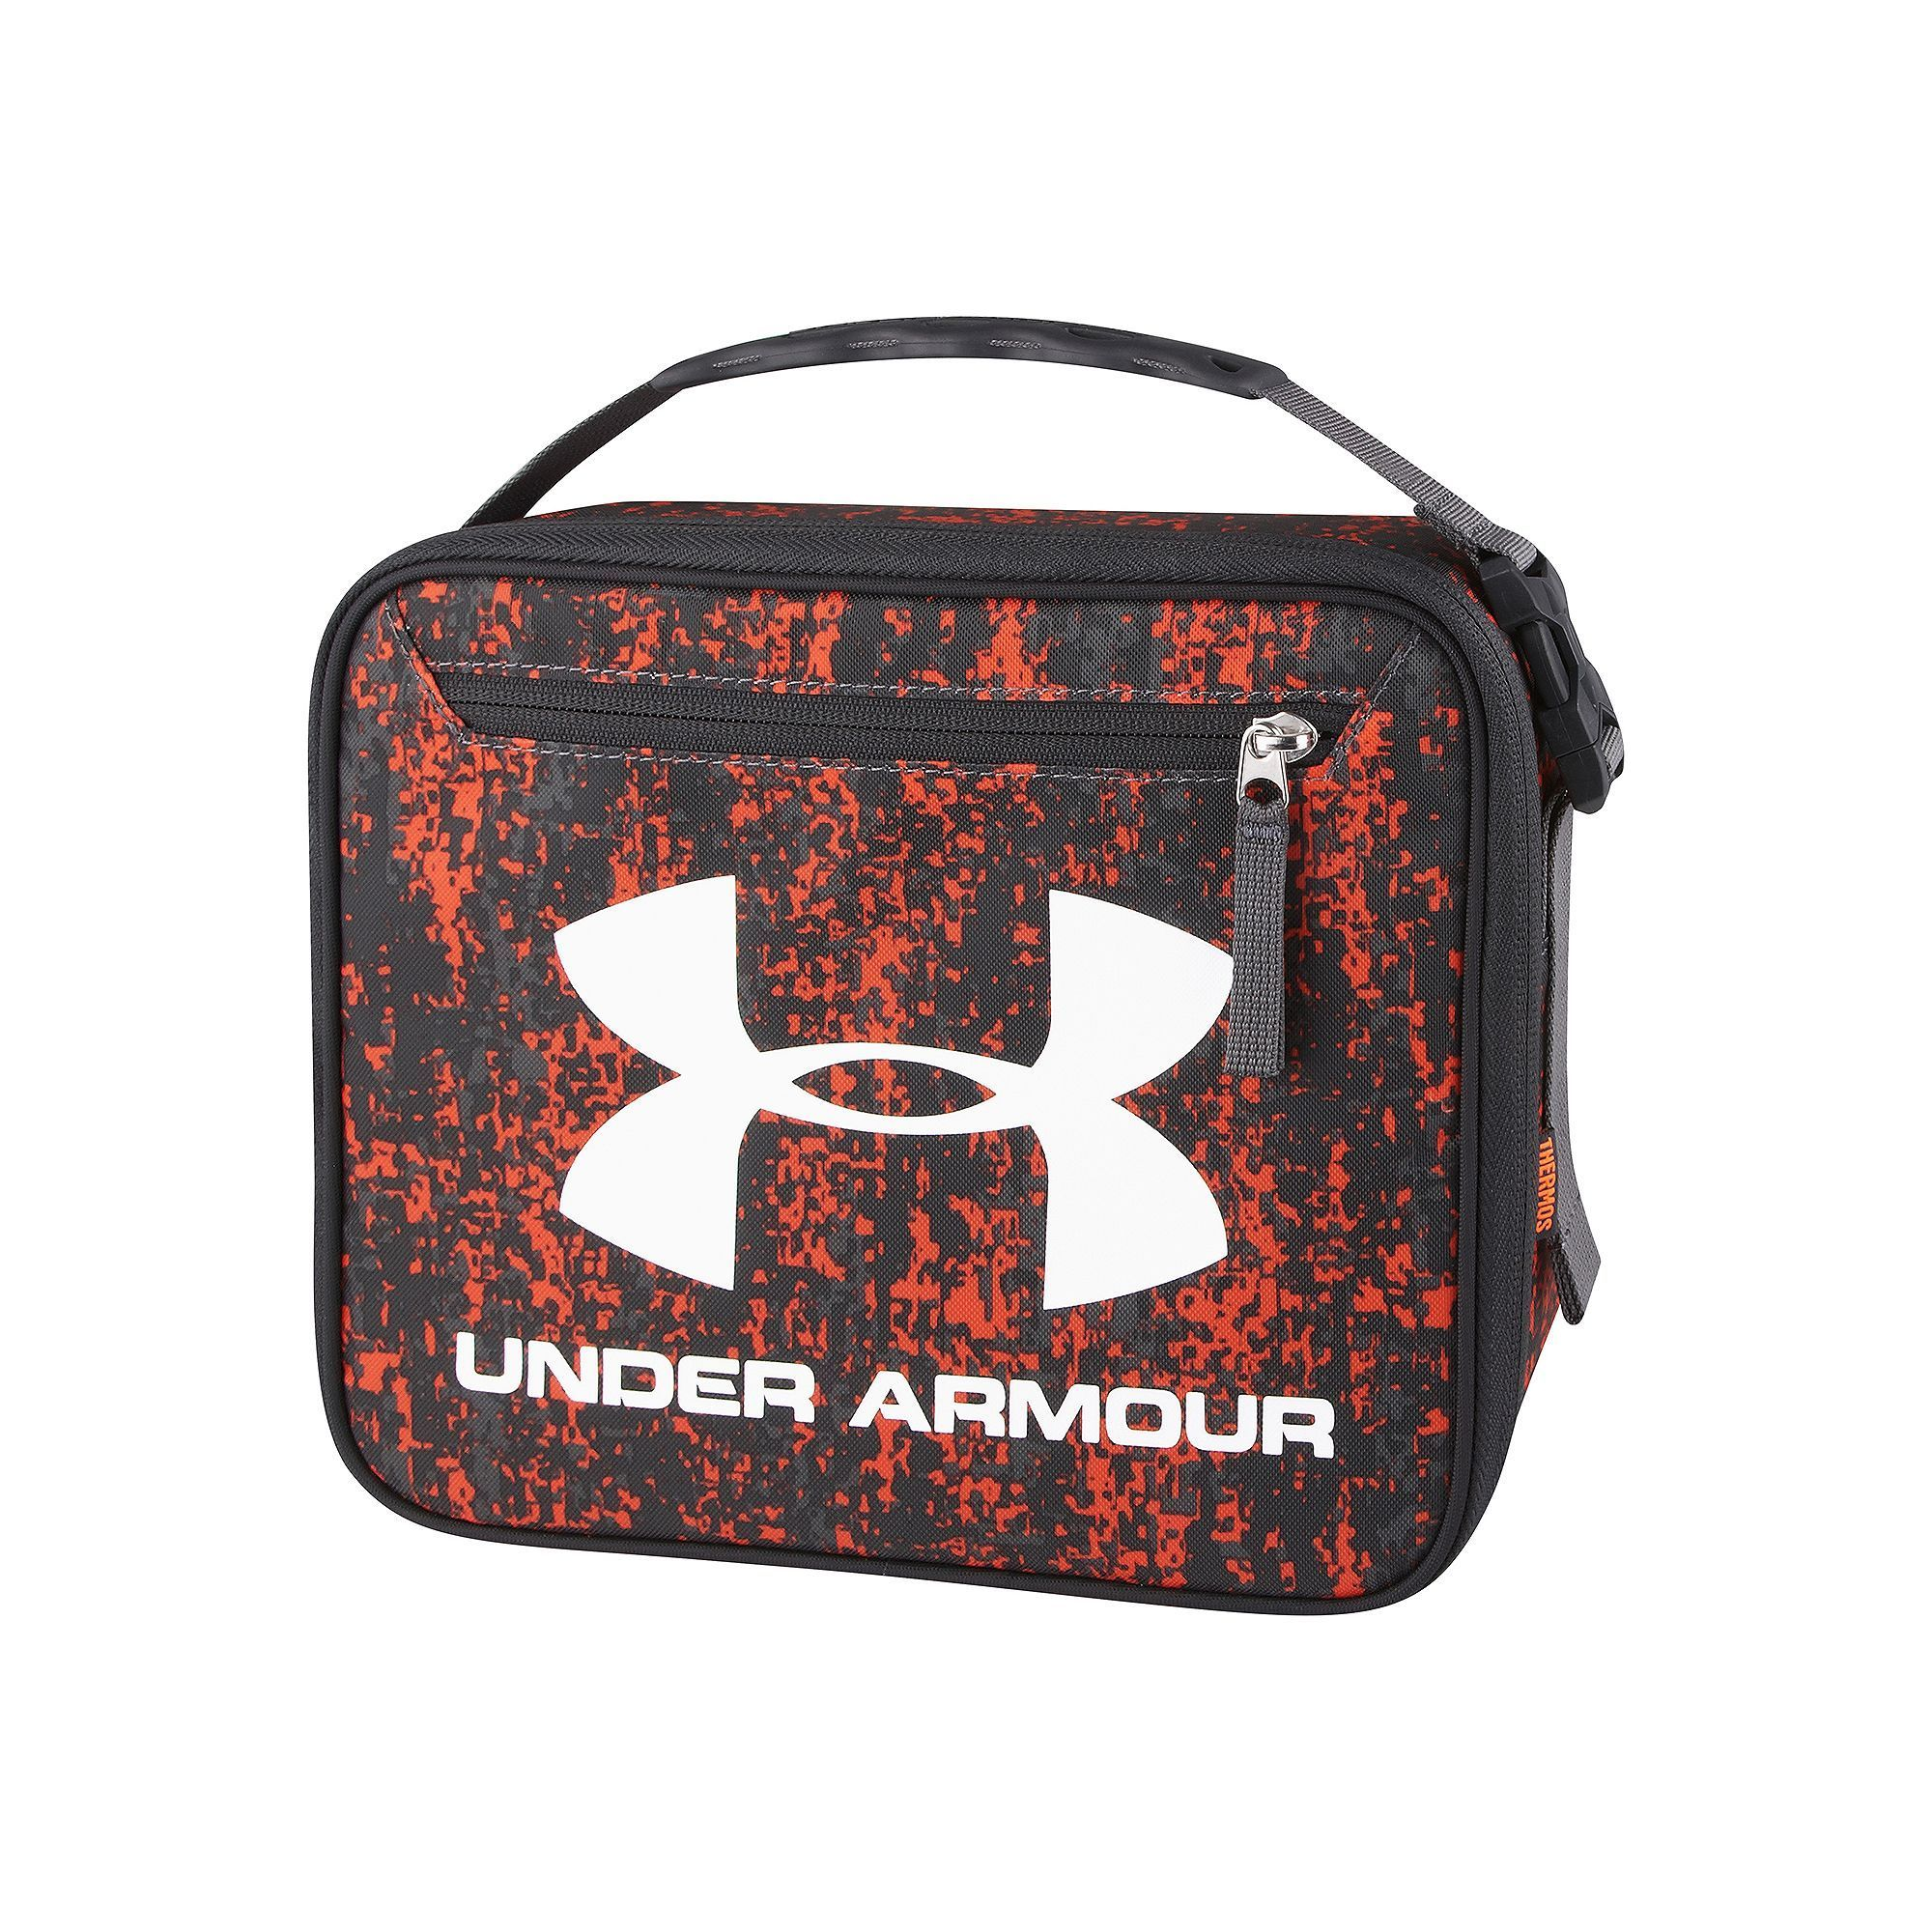 364a377c068e Boys Under Armour Lunch Box in 2019 | Products | Boys lunch boxes ...